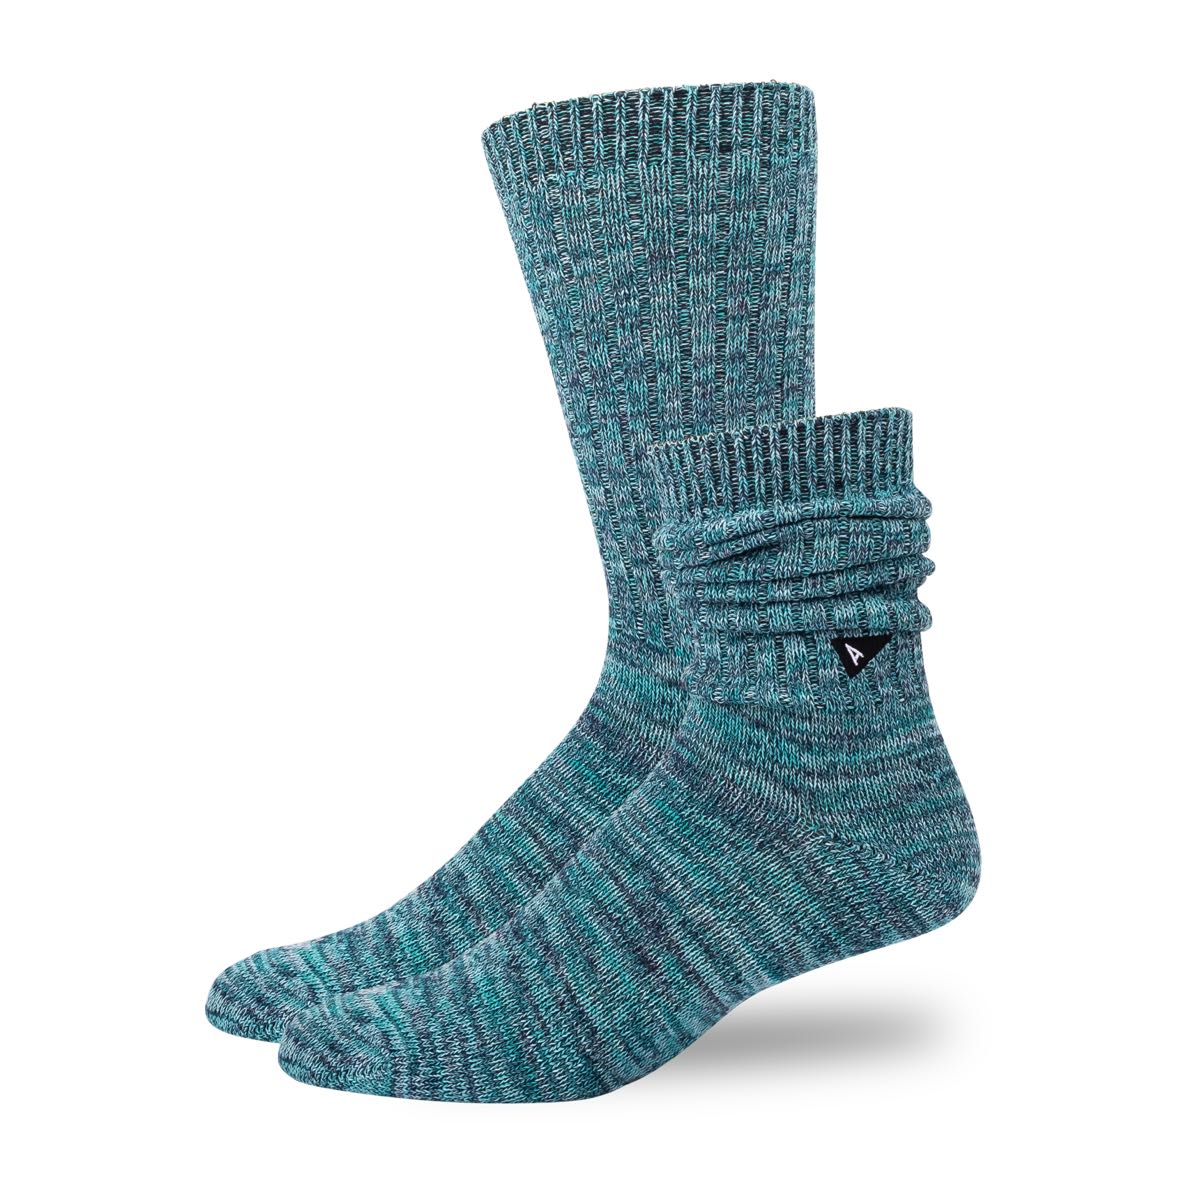 Arvin Goods Casual Twisted Socks - Teal image 2